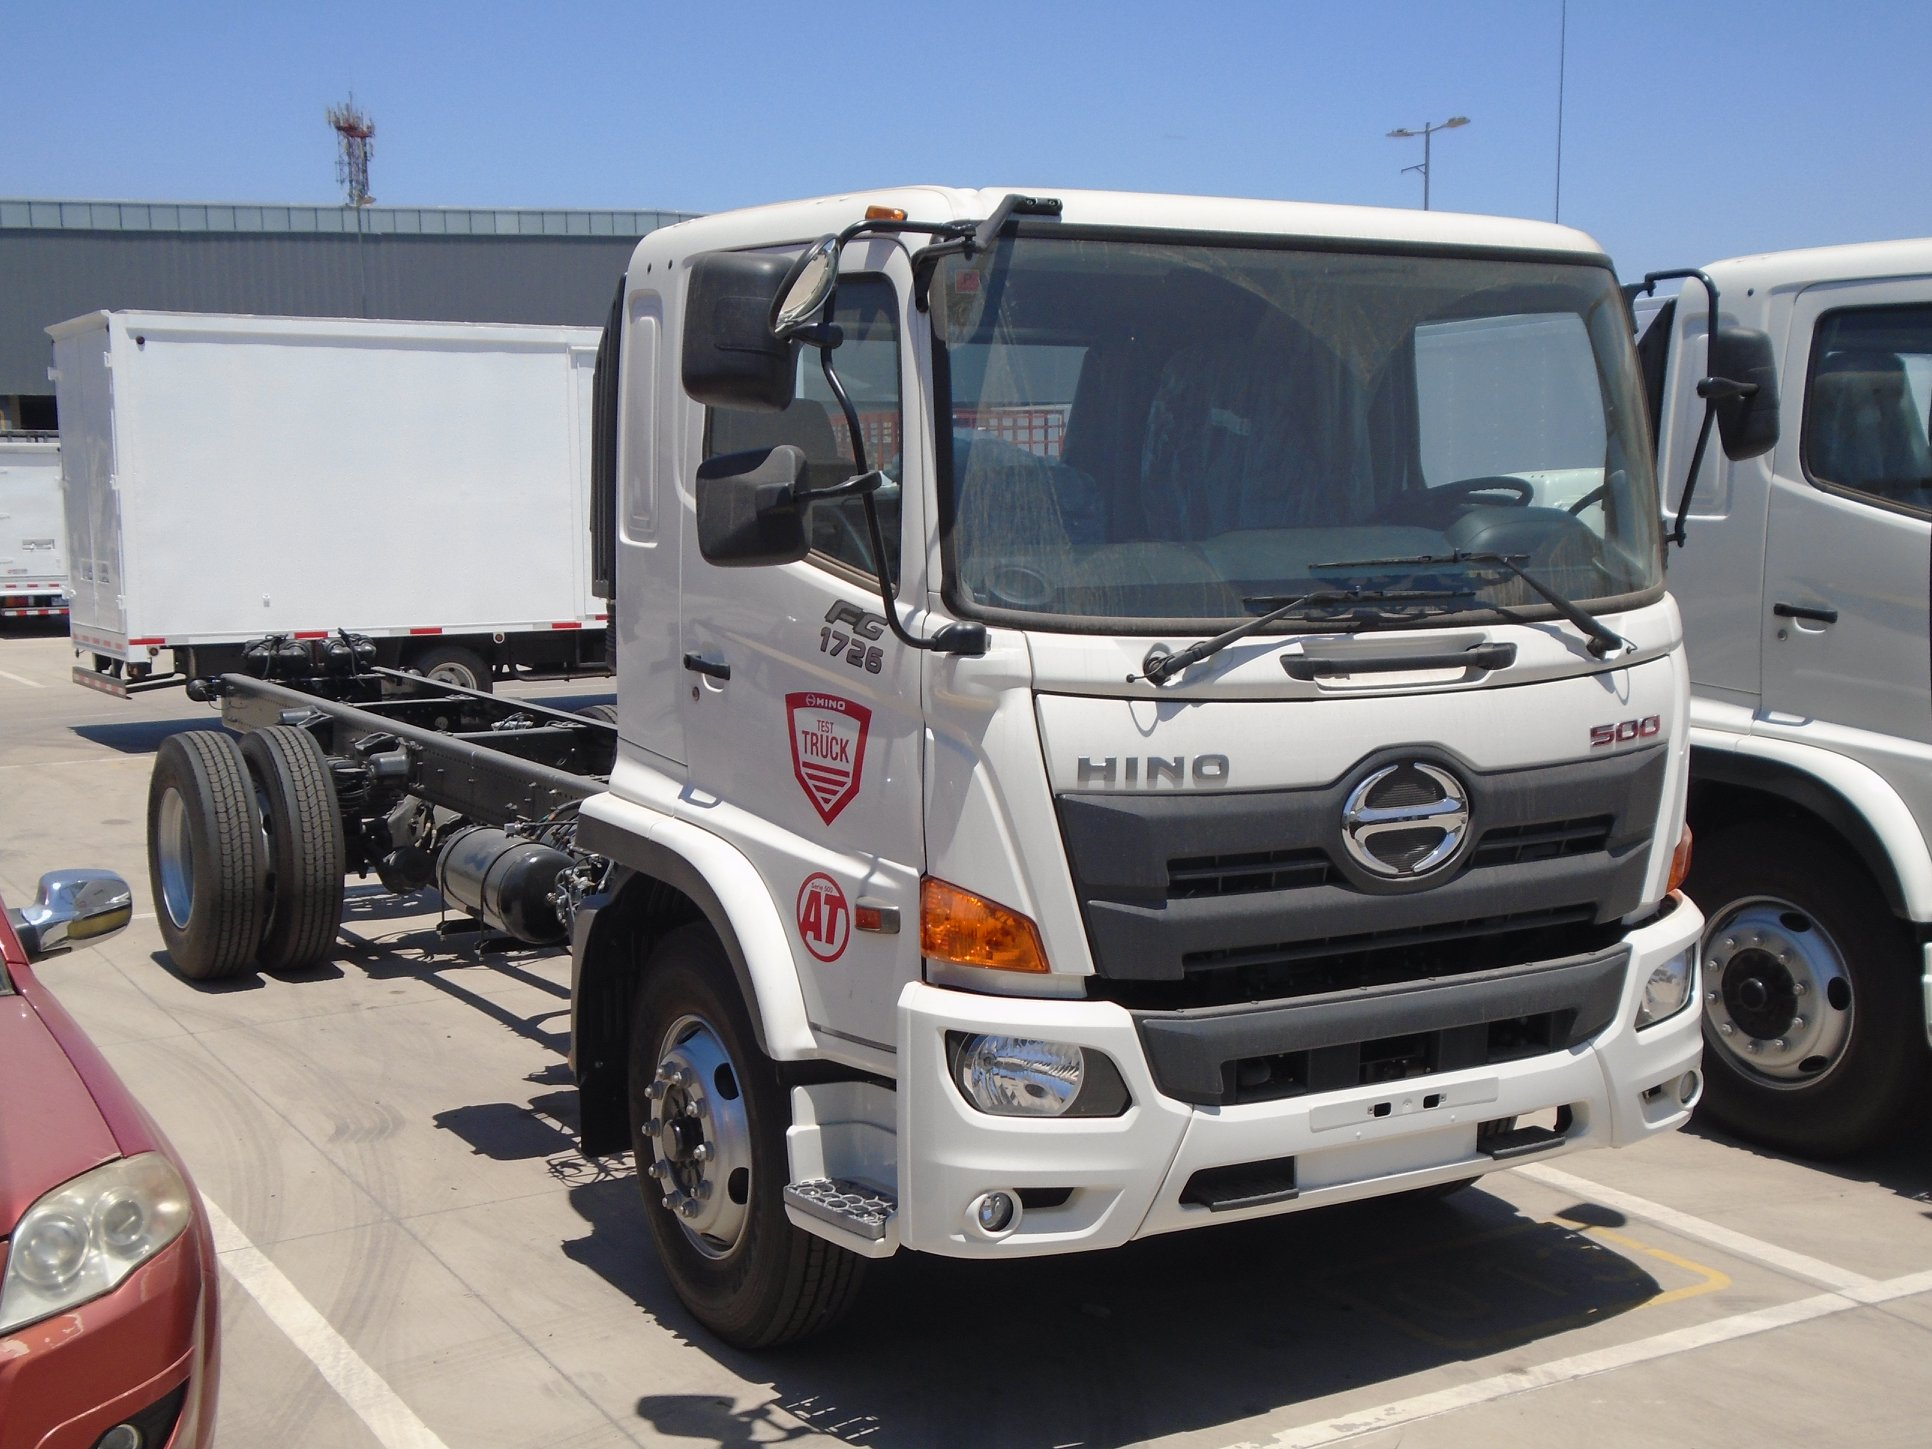 HINO-SERIE-500-FG-1726-AT-4X2-CAMION--2019